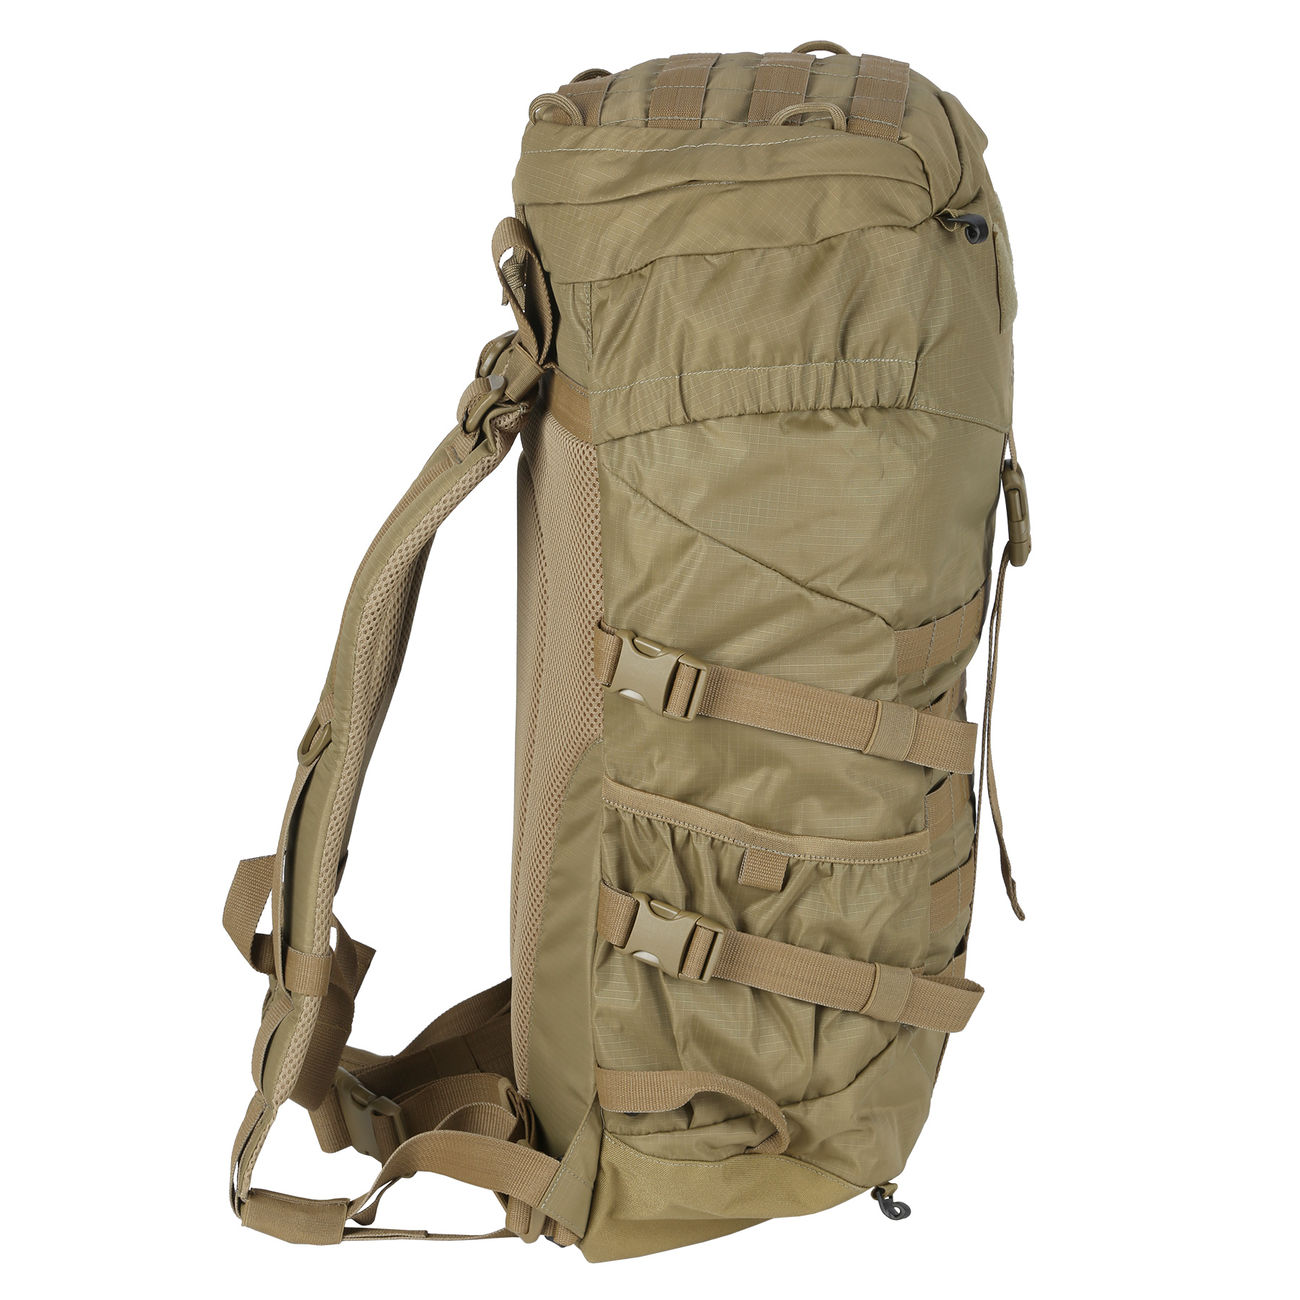 TT Rucksack Trooper Light Pack 35 khaki 2